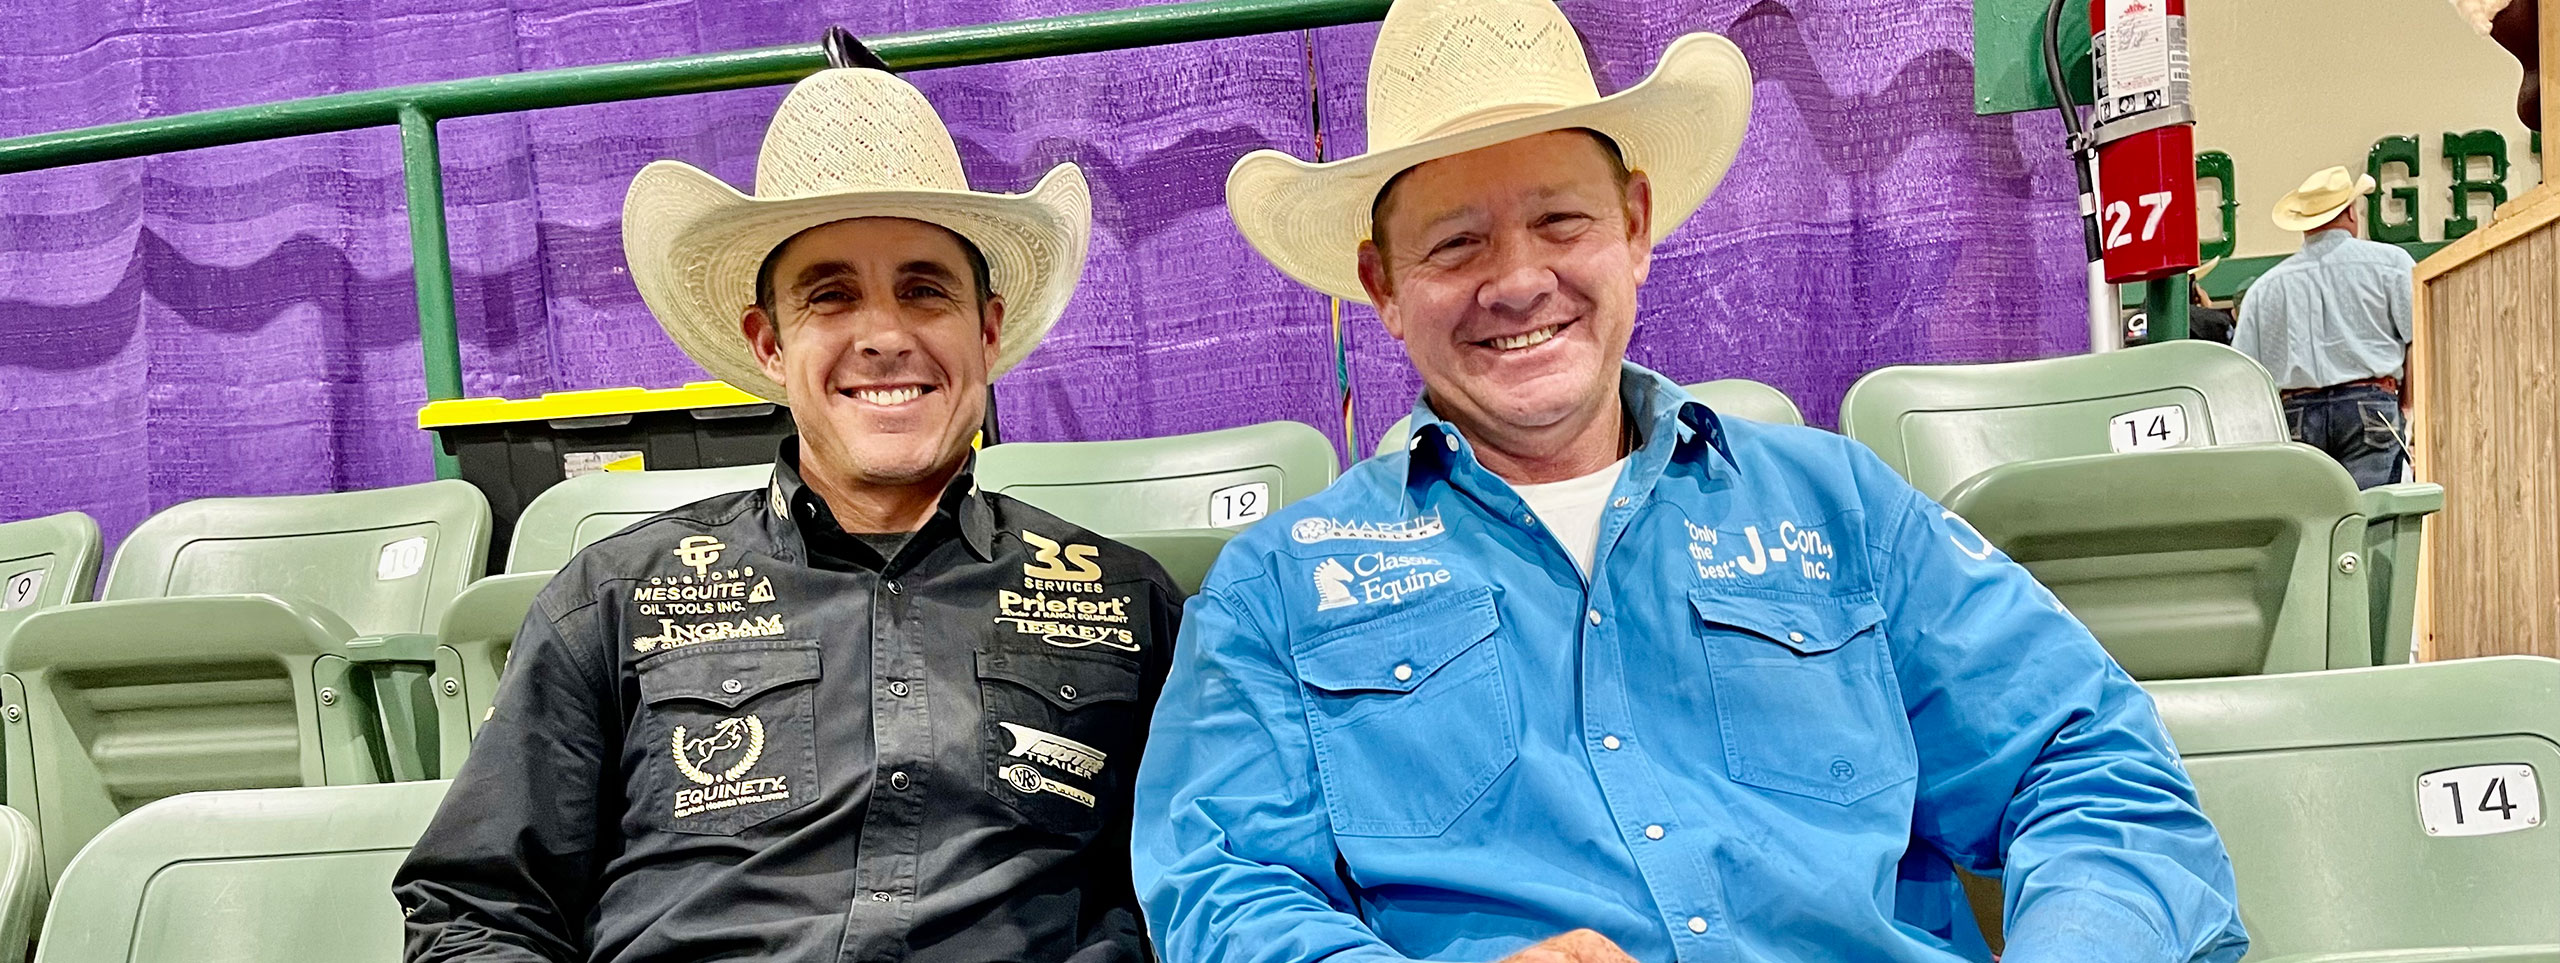 Past BFI Champs Patrick Smith and Kory Koontz Are Here for the Money at Reno Open